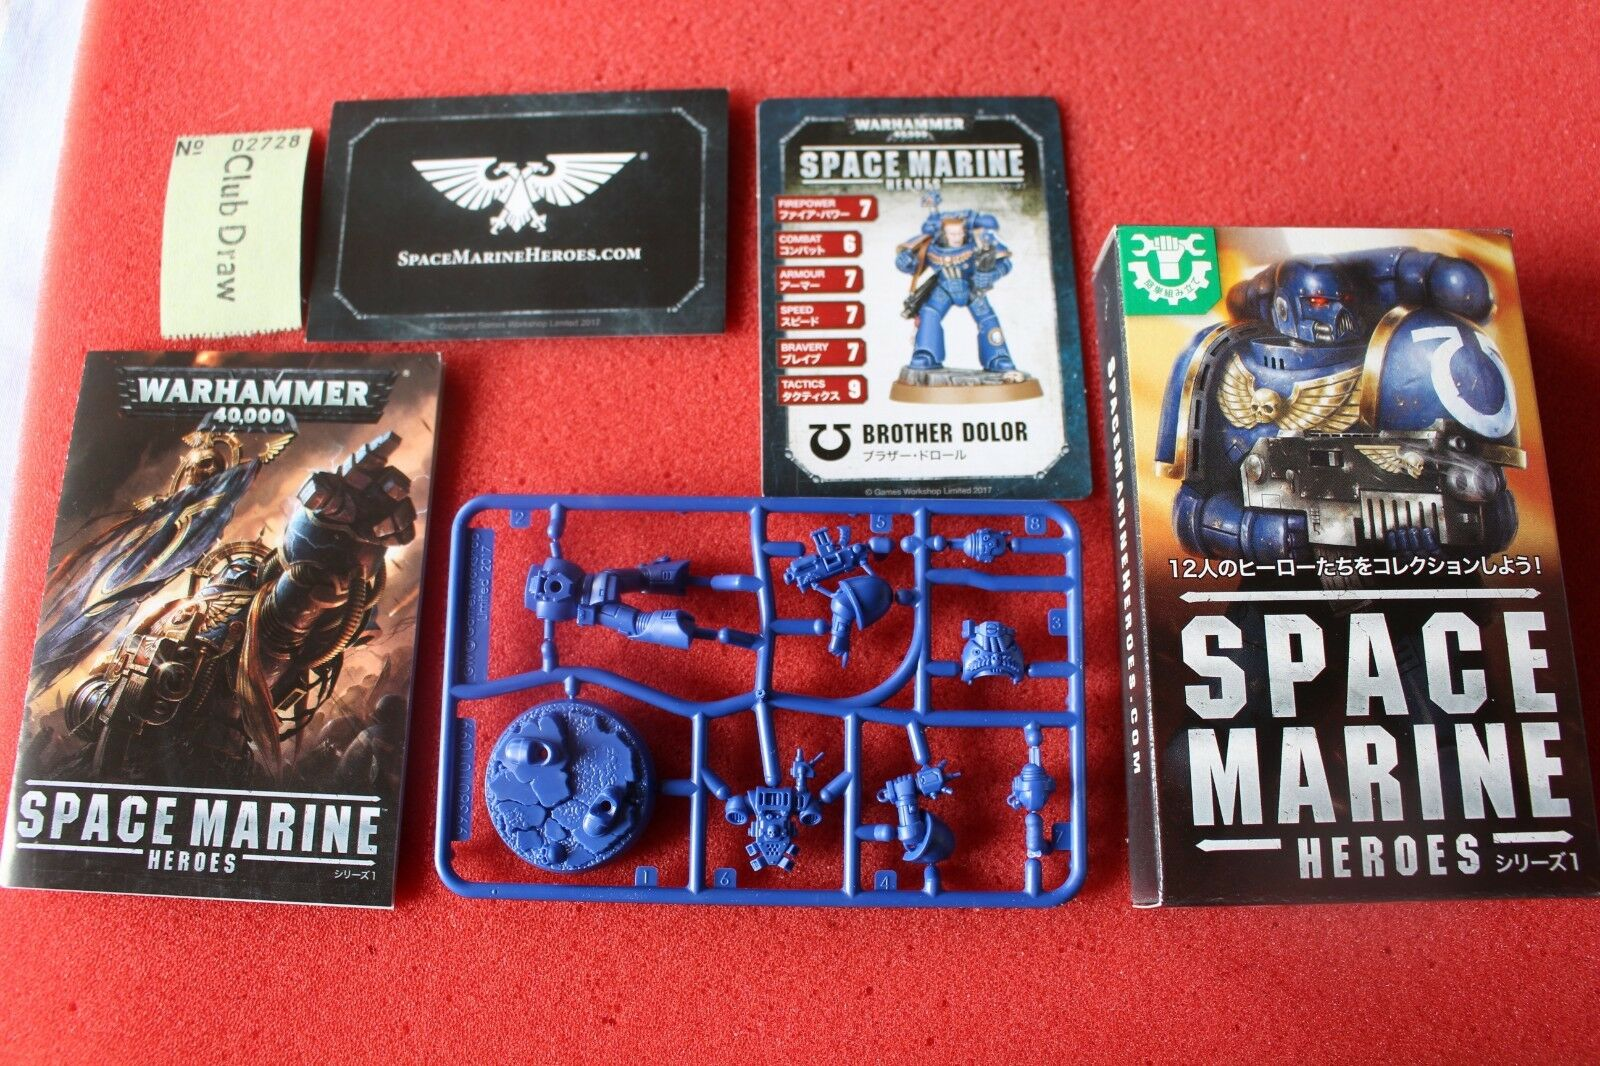 Space Marine Heroes Bredher Dolor Japan Exclusive Games Workshop New Marines GW